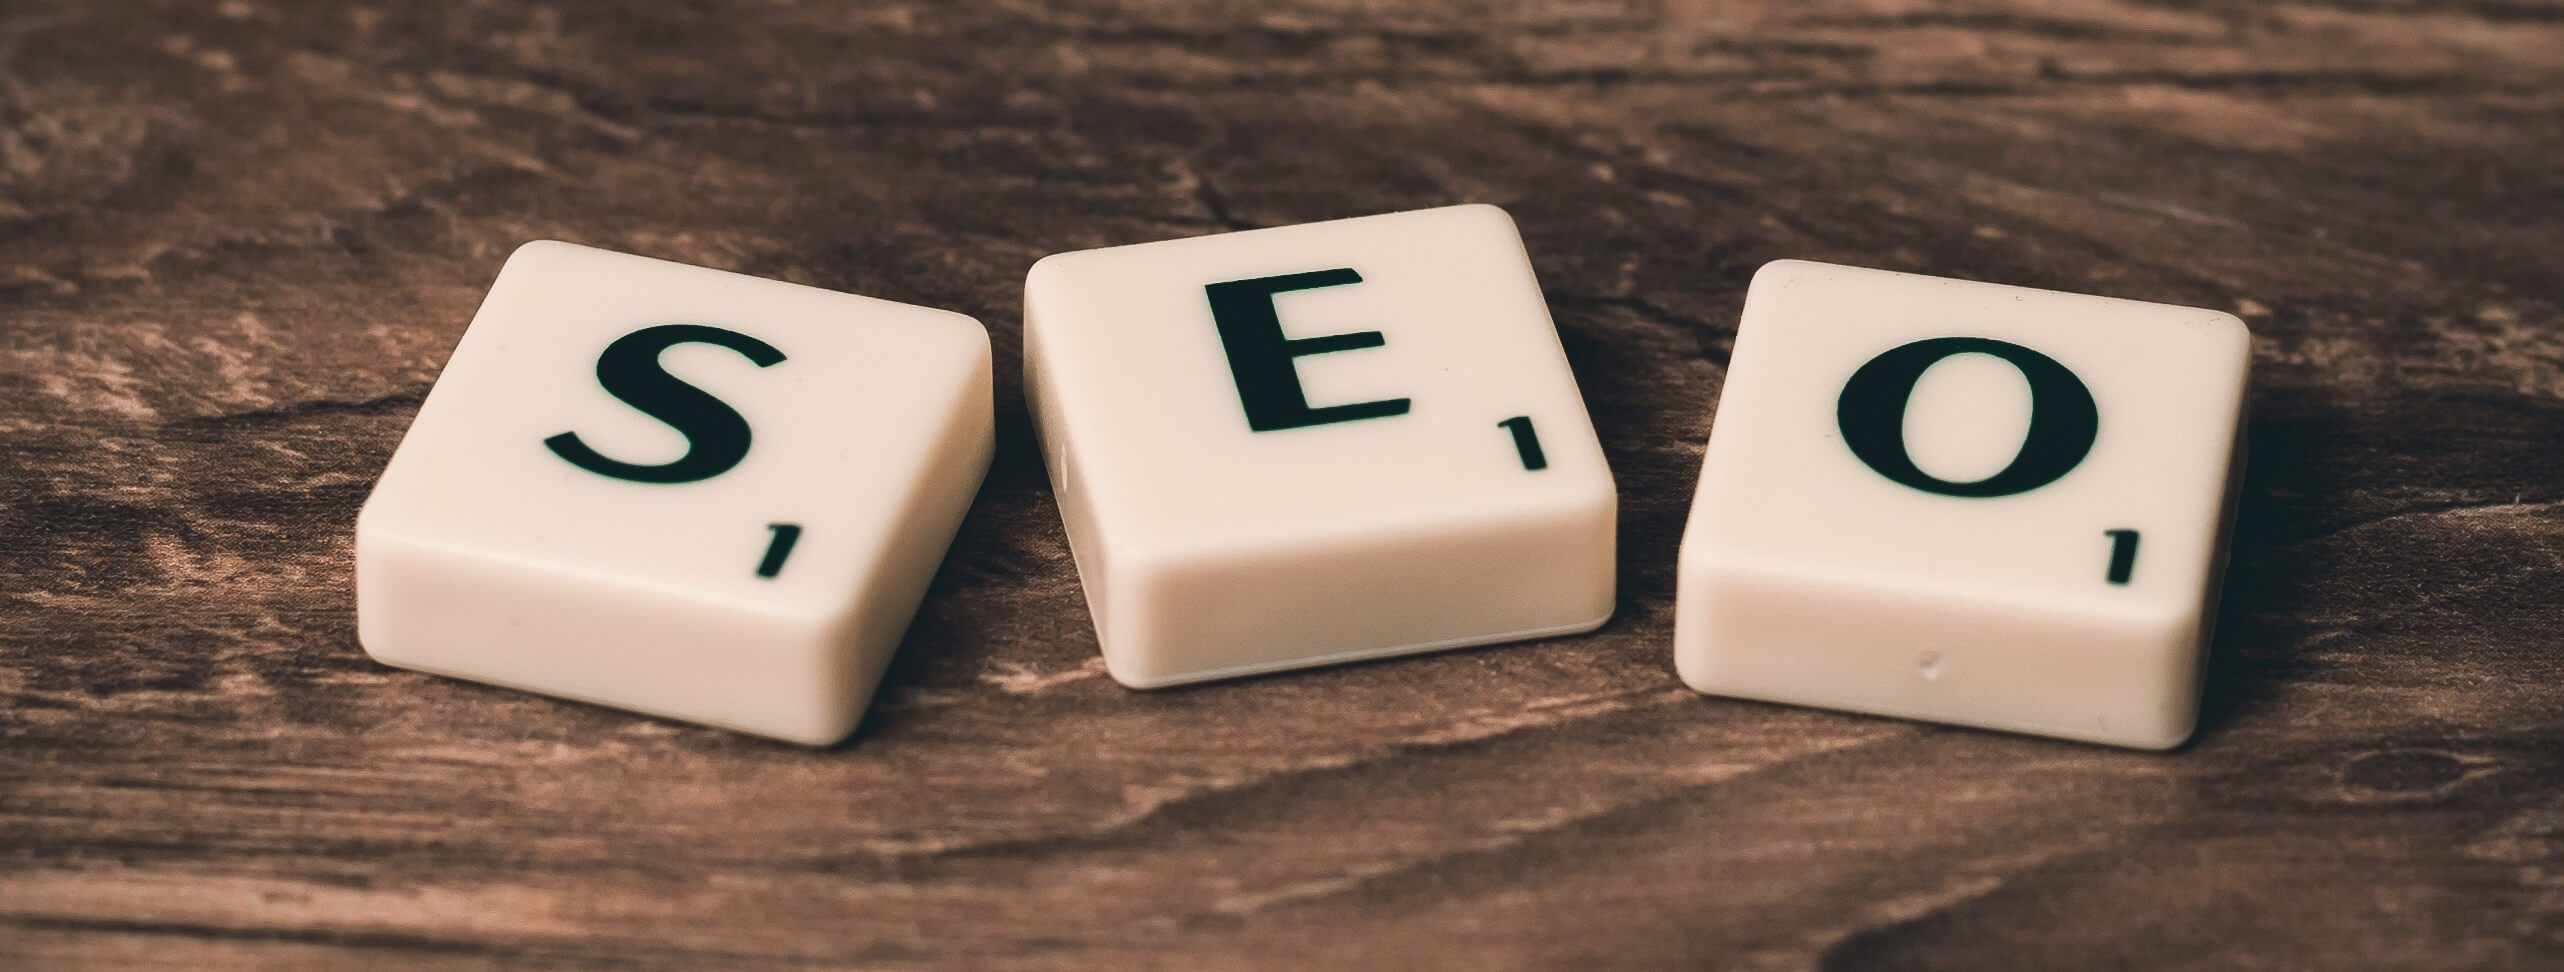 Clearing Up SEM v. SEO Confusion